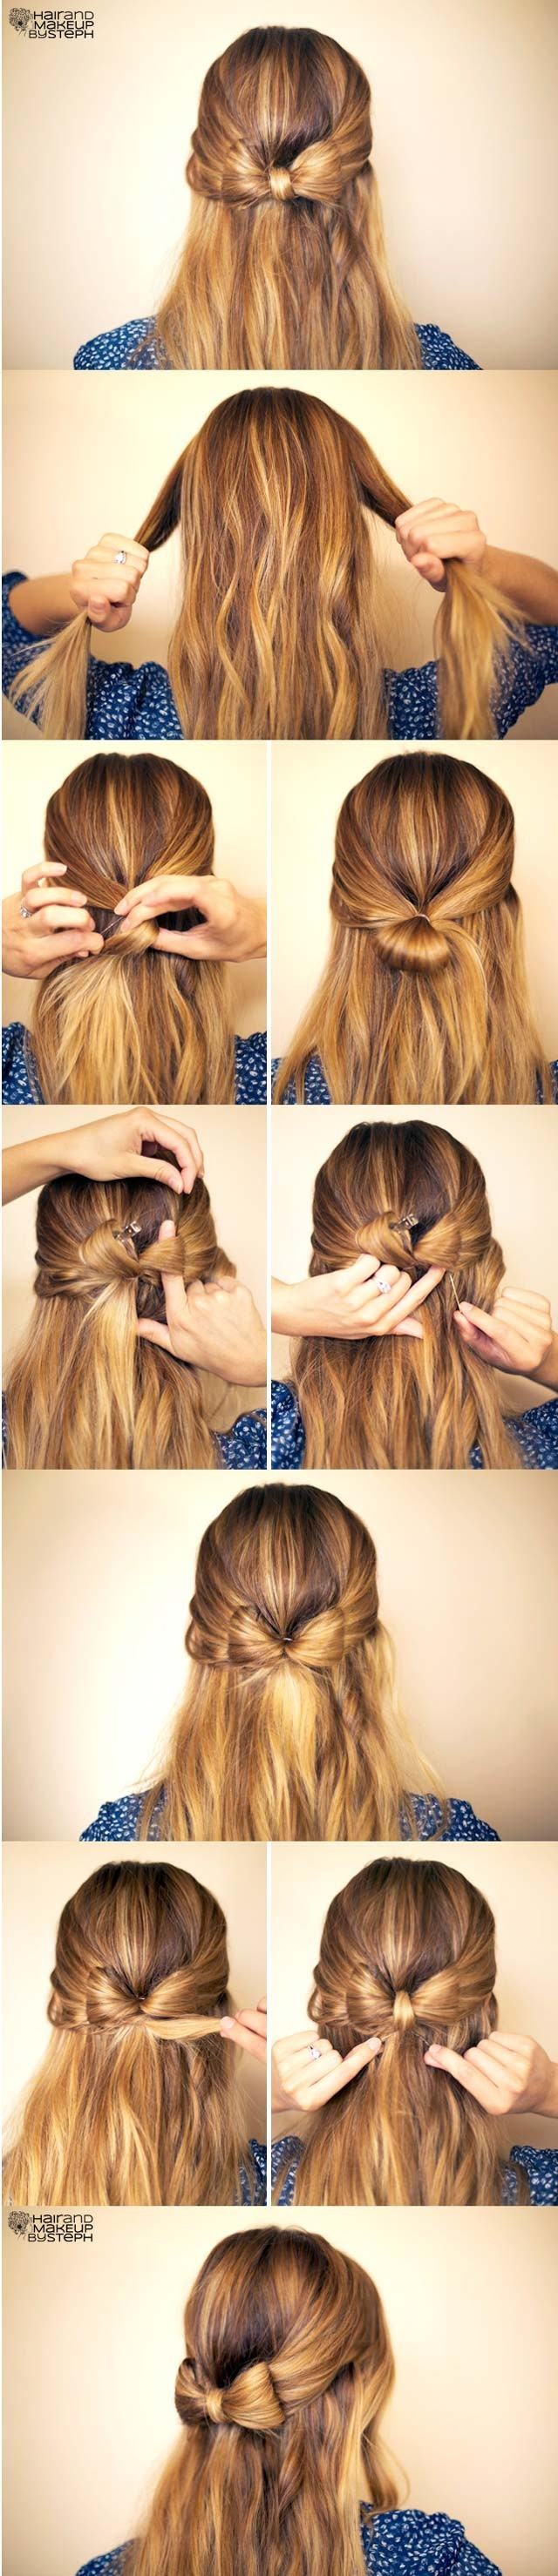 Stupendous 15 Cute Hairstyles Step By Step Hairstyles For Long Hair Short Hairstyles For Black Women Fulllsitofus